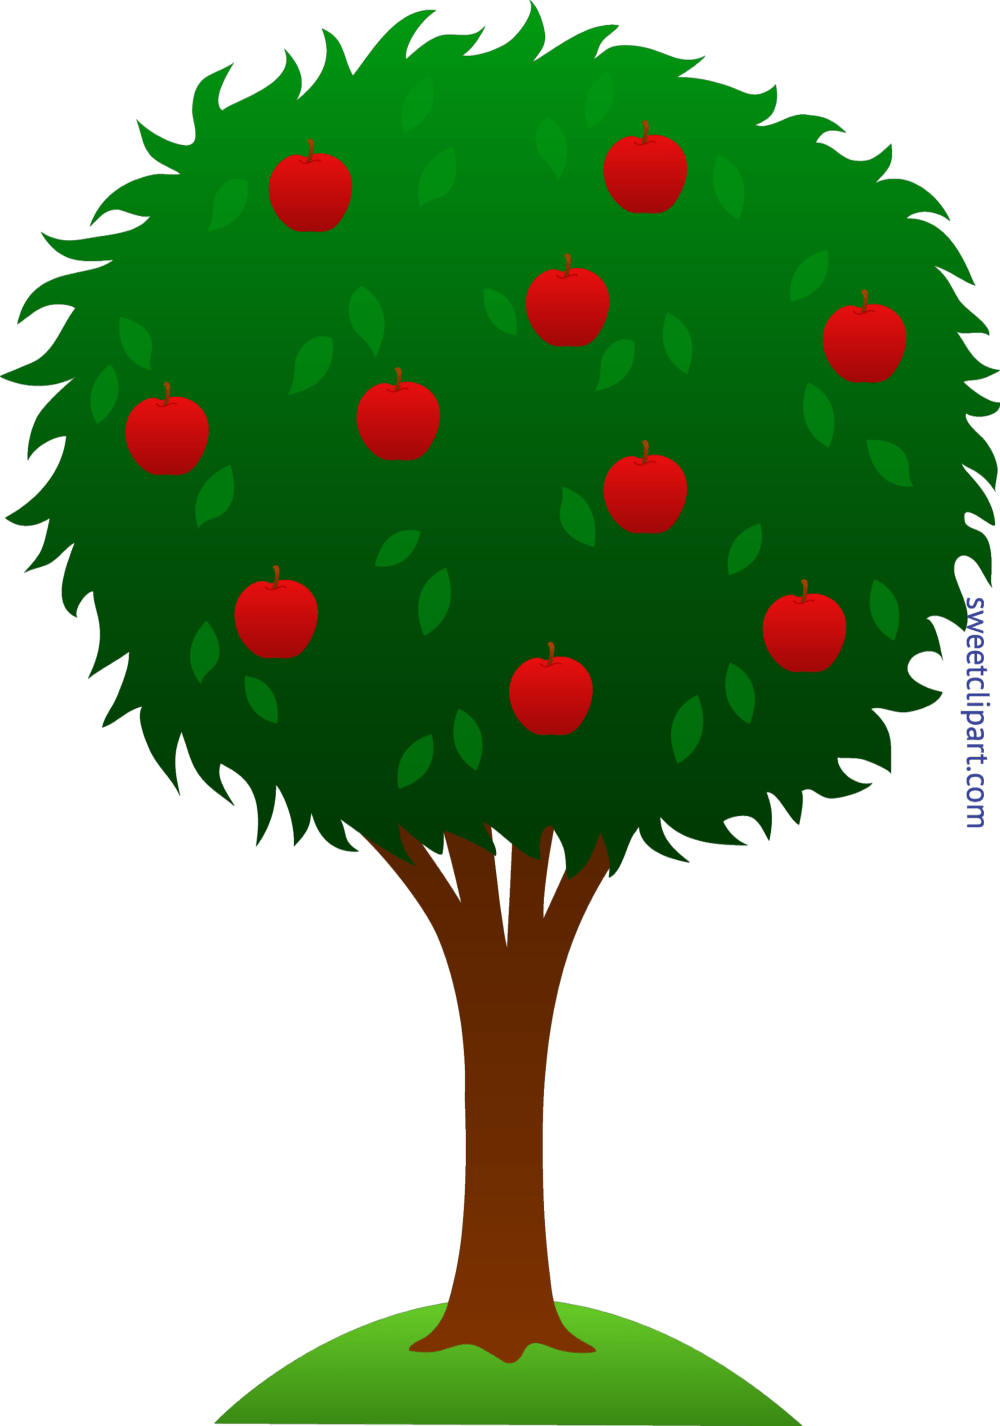 medium resolution of green clipart apple tree clip art sweet image royalty free stock